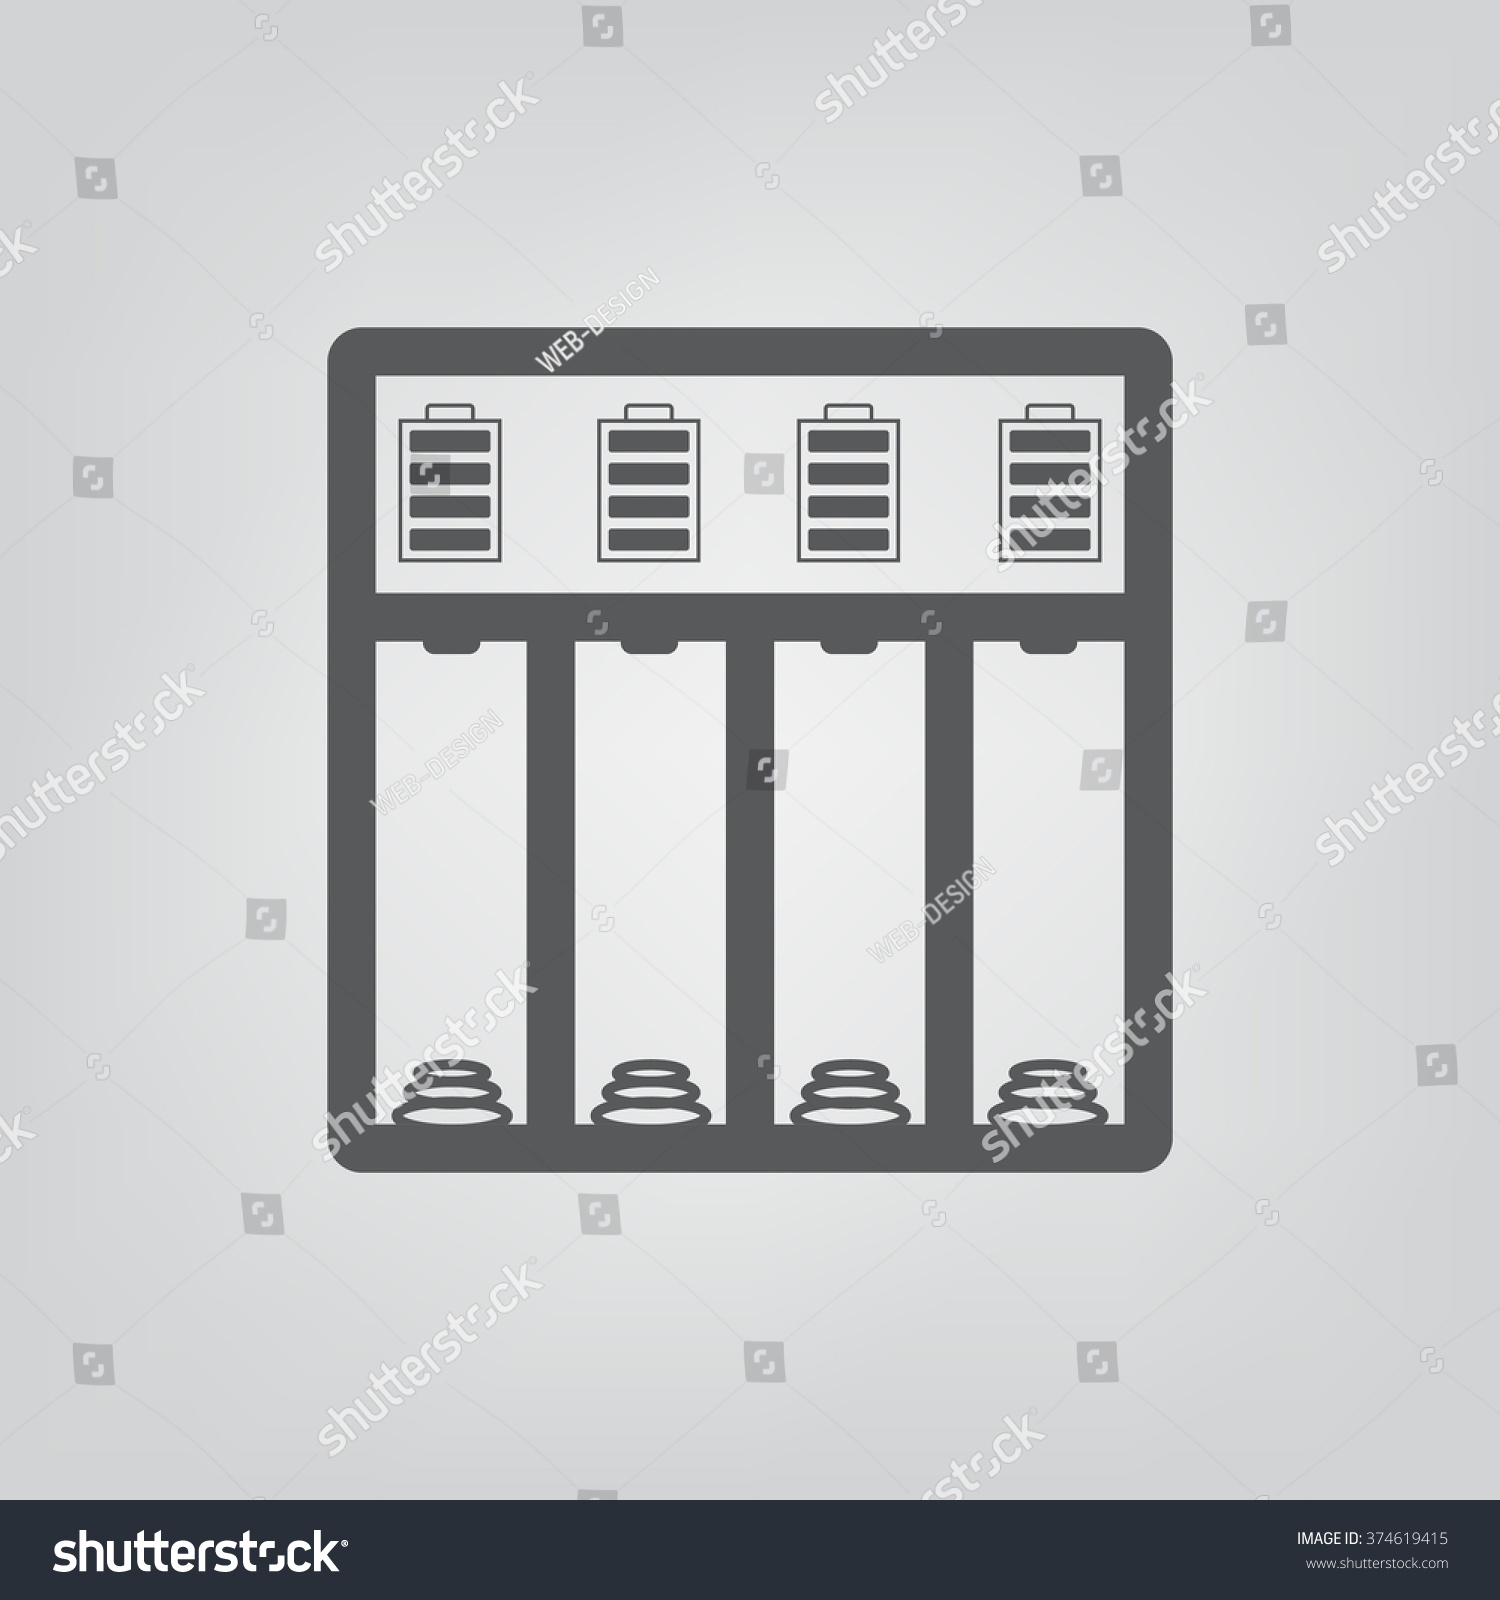 Battery Charger Icon JPG Stock Vector (Royalty Free